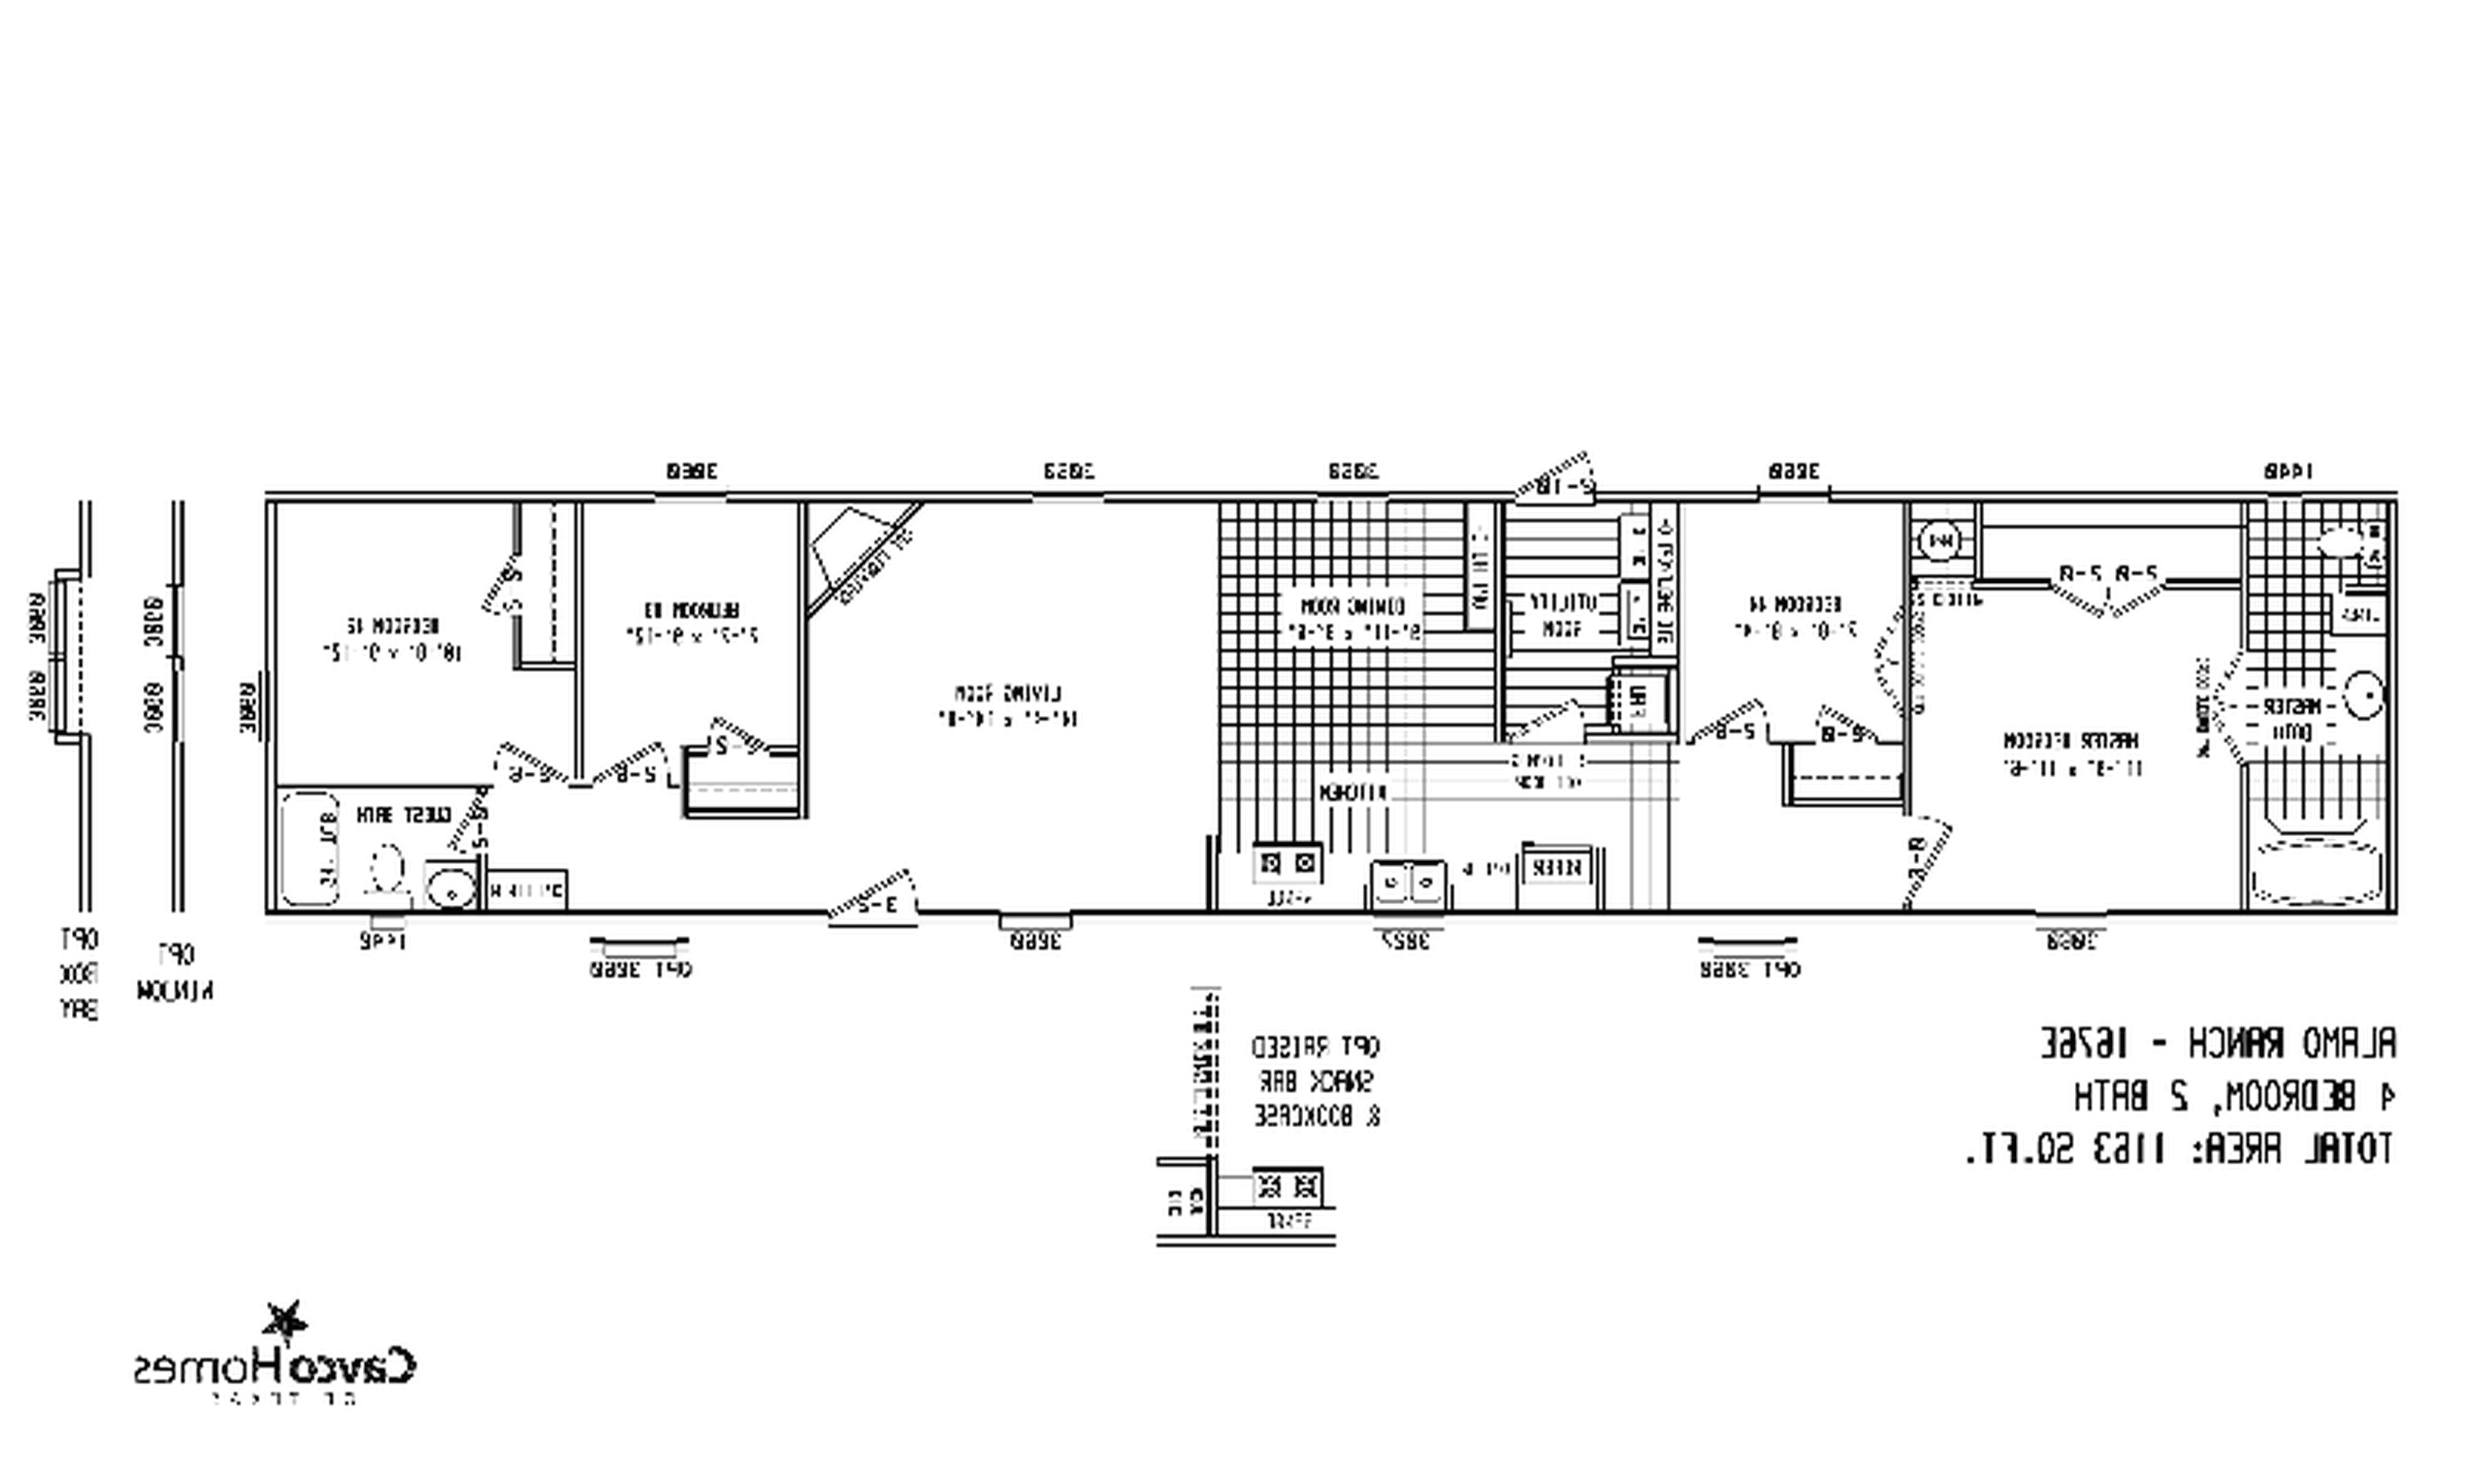 duggar family house floor plan slyfelinos com lovely duggar house floor plan 7